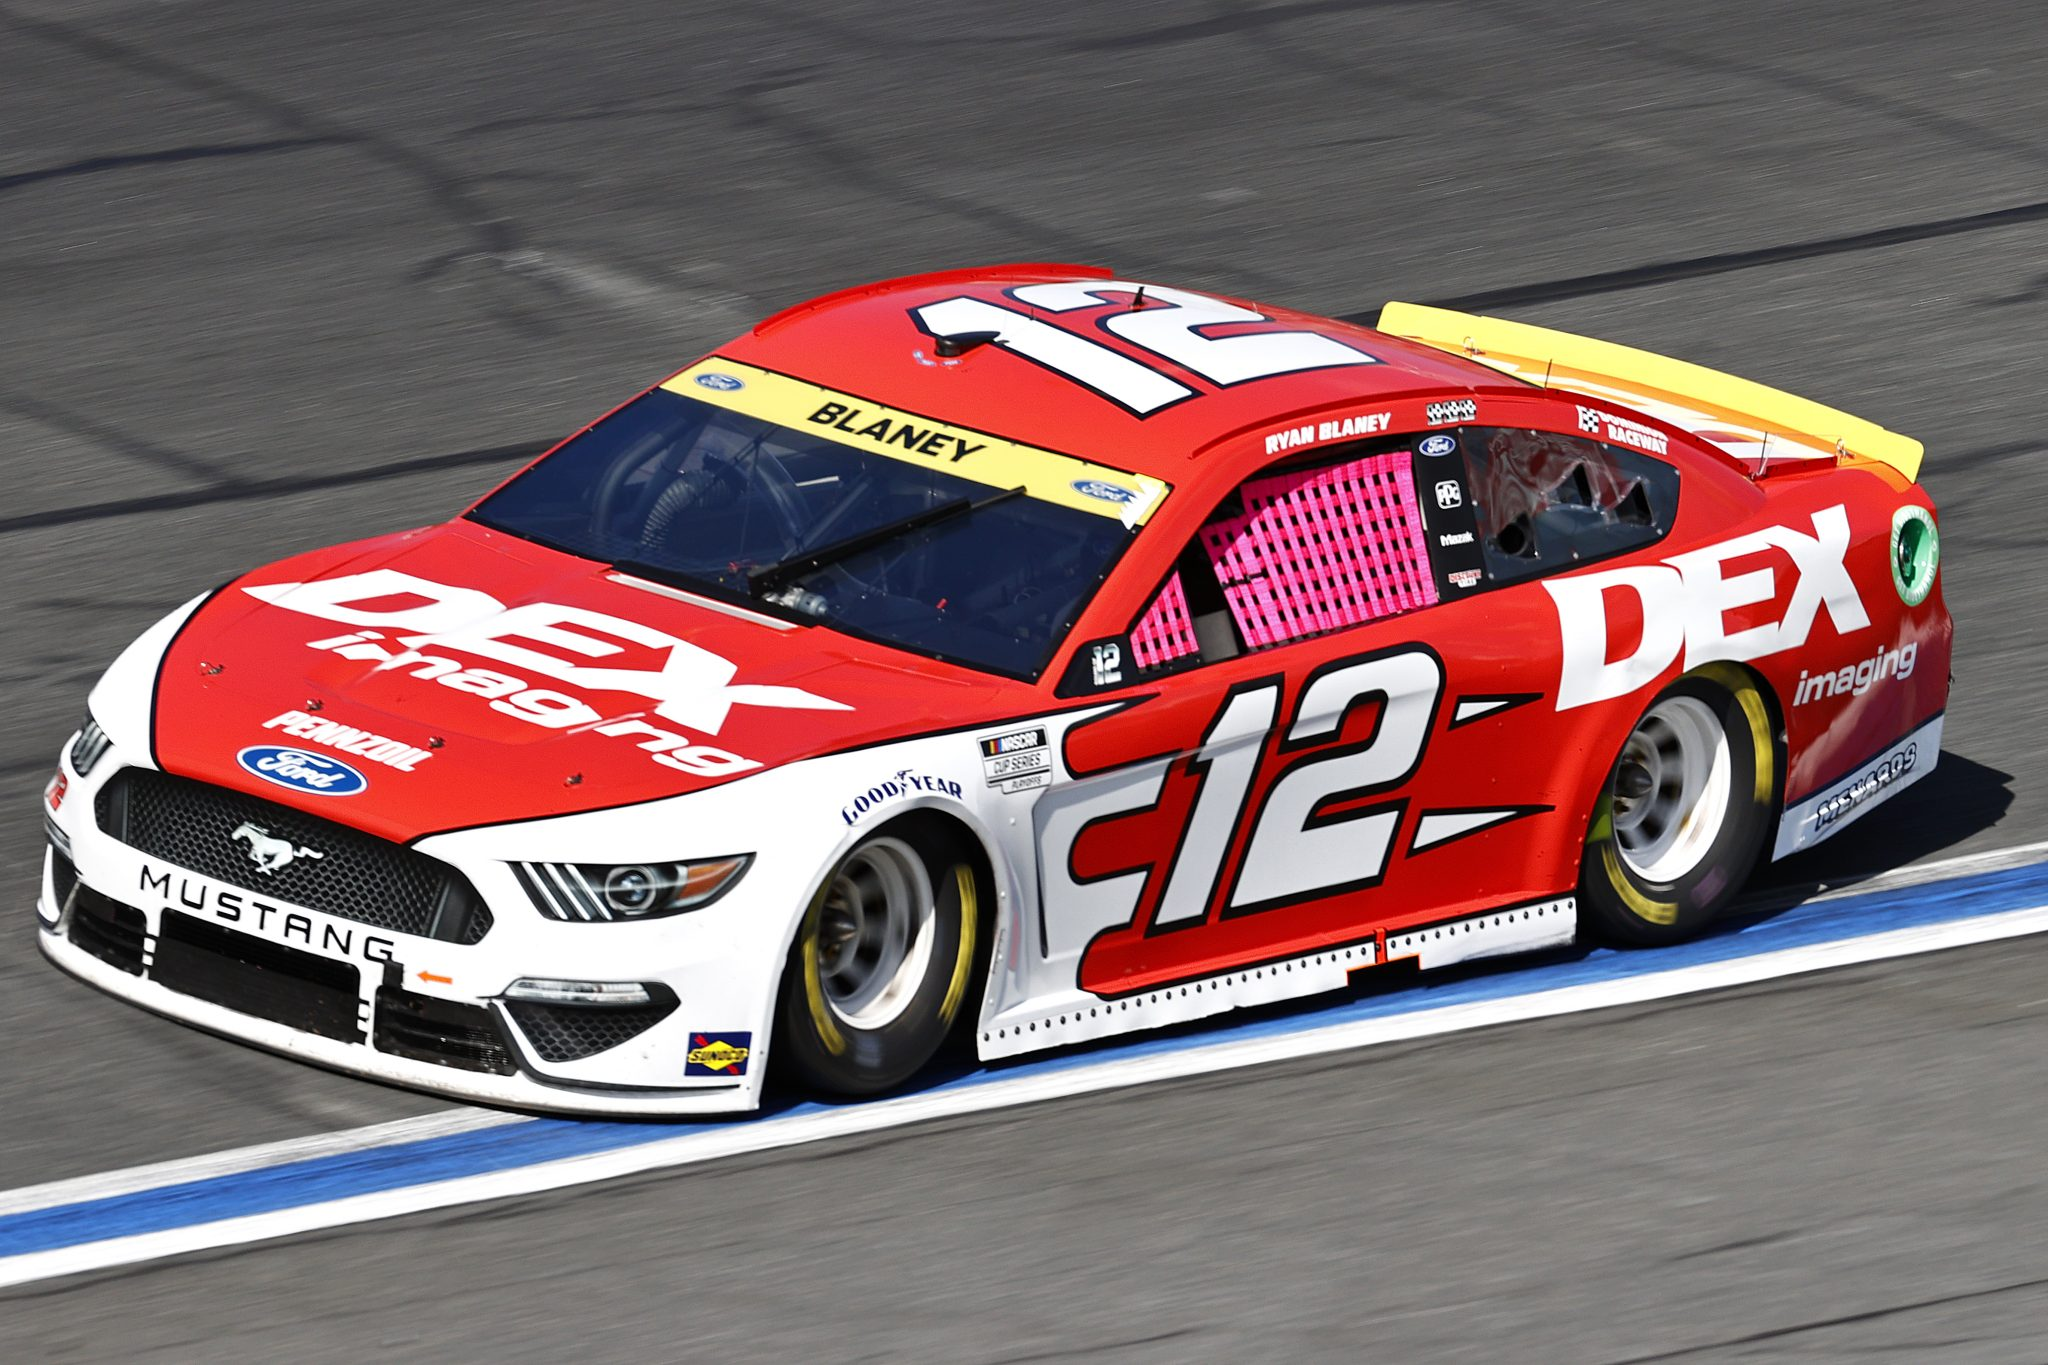 CONCORD, NORTH CAROLINA - OCTOBER 10: Ryan Blaney, driver of the #12 DEX Imaging Ford, drives during the NASCAR Cup Series Bank of America ROVAL 400 at Charlotte Motor Speedway on October 10, 2021 in Concord, North Carolina. (Photo by Jared C. Tilton/Getty Images) | Getty Images